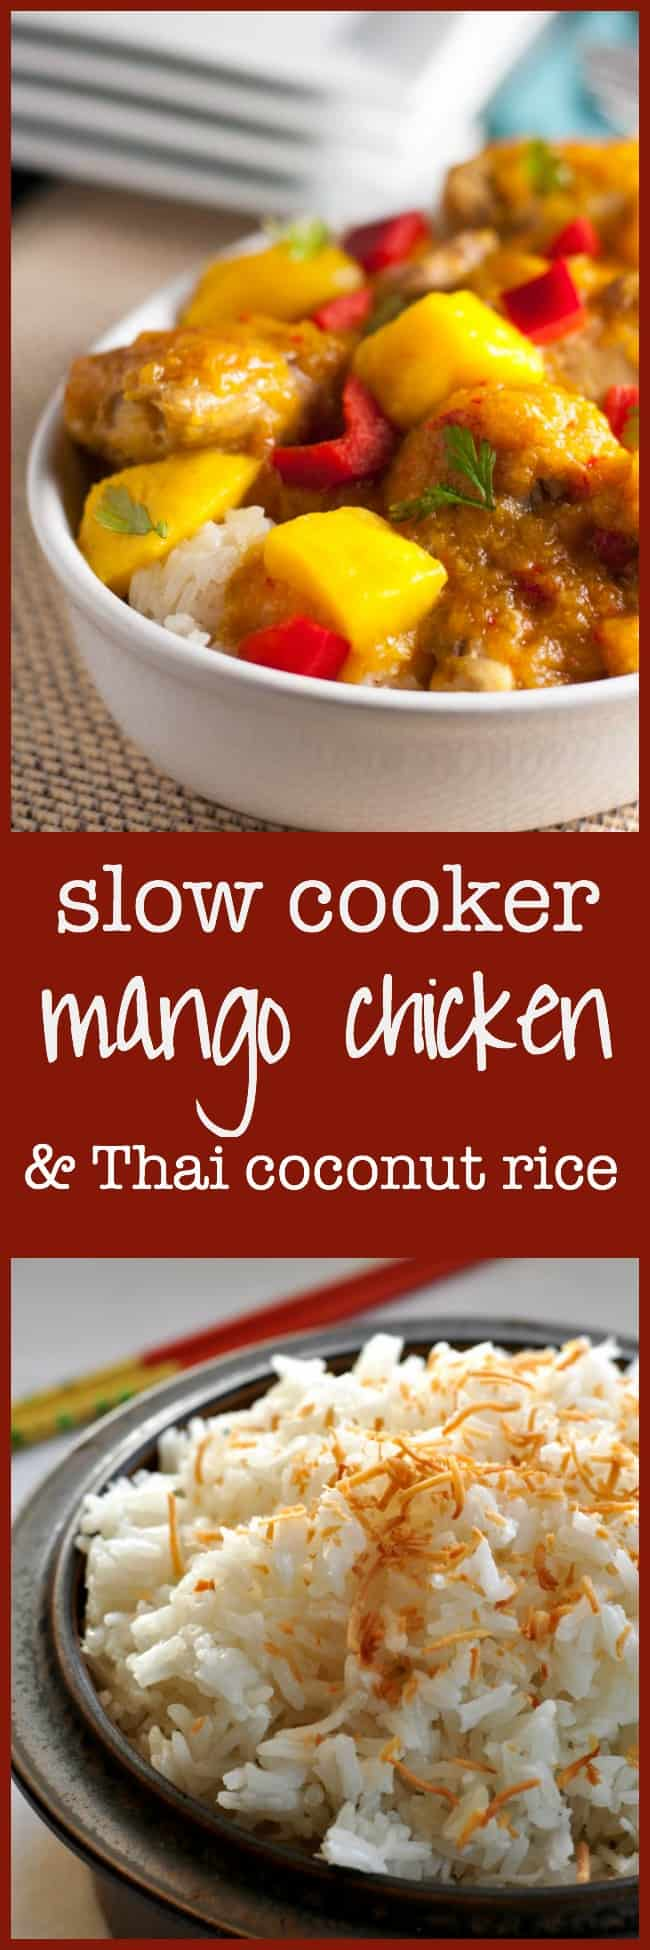 Easy Spicy Thai Slow Cooker Chicken Recipe — Dishmaps